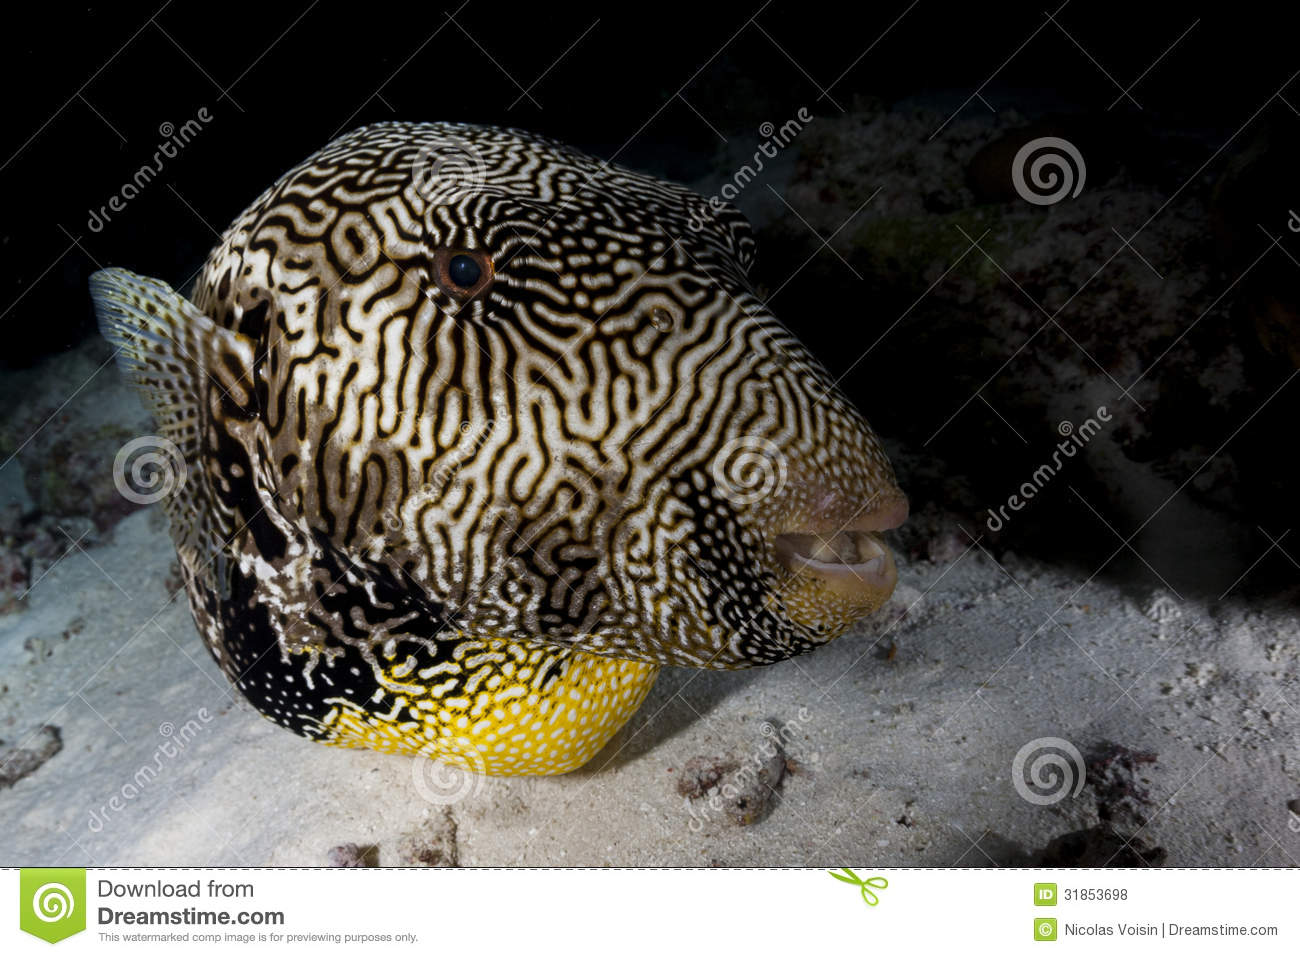 Giant puffer fish royalty free stock photos image 31853698 for Giant puffer fish